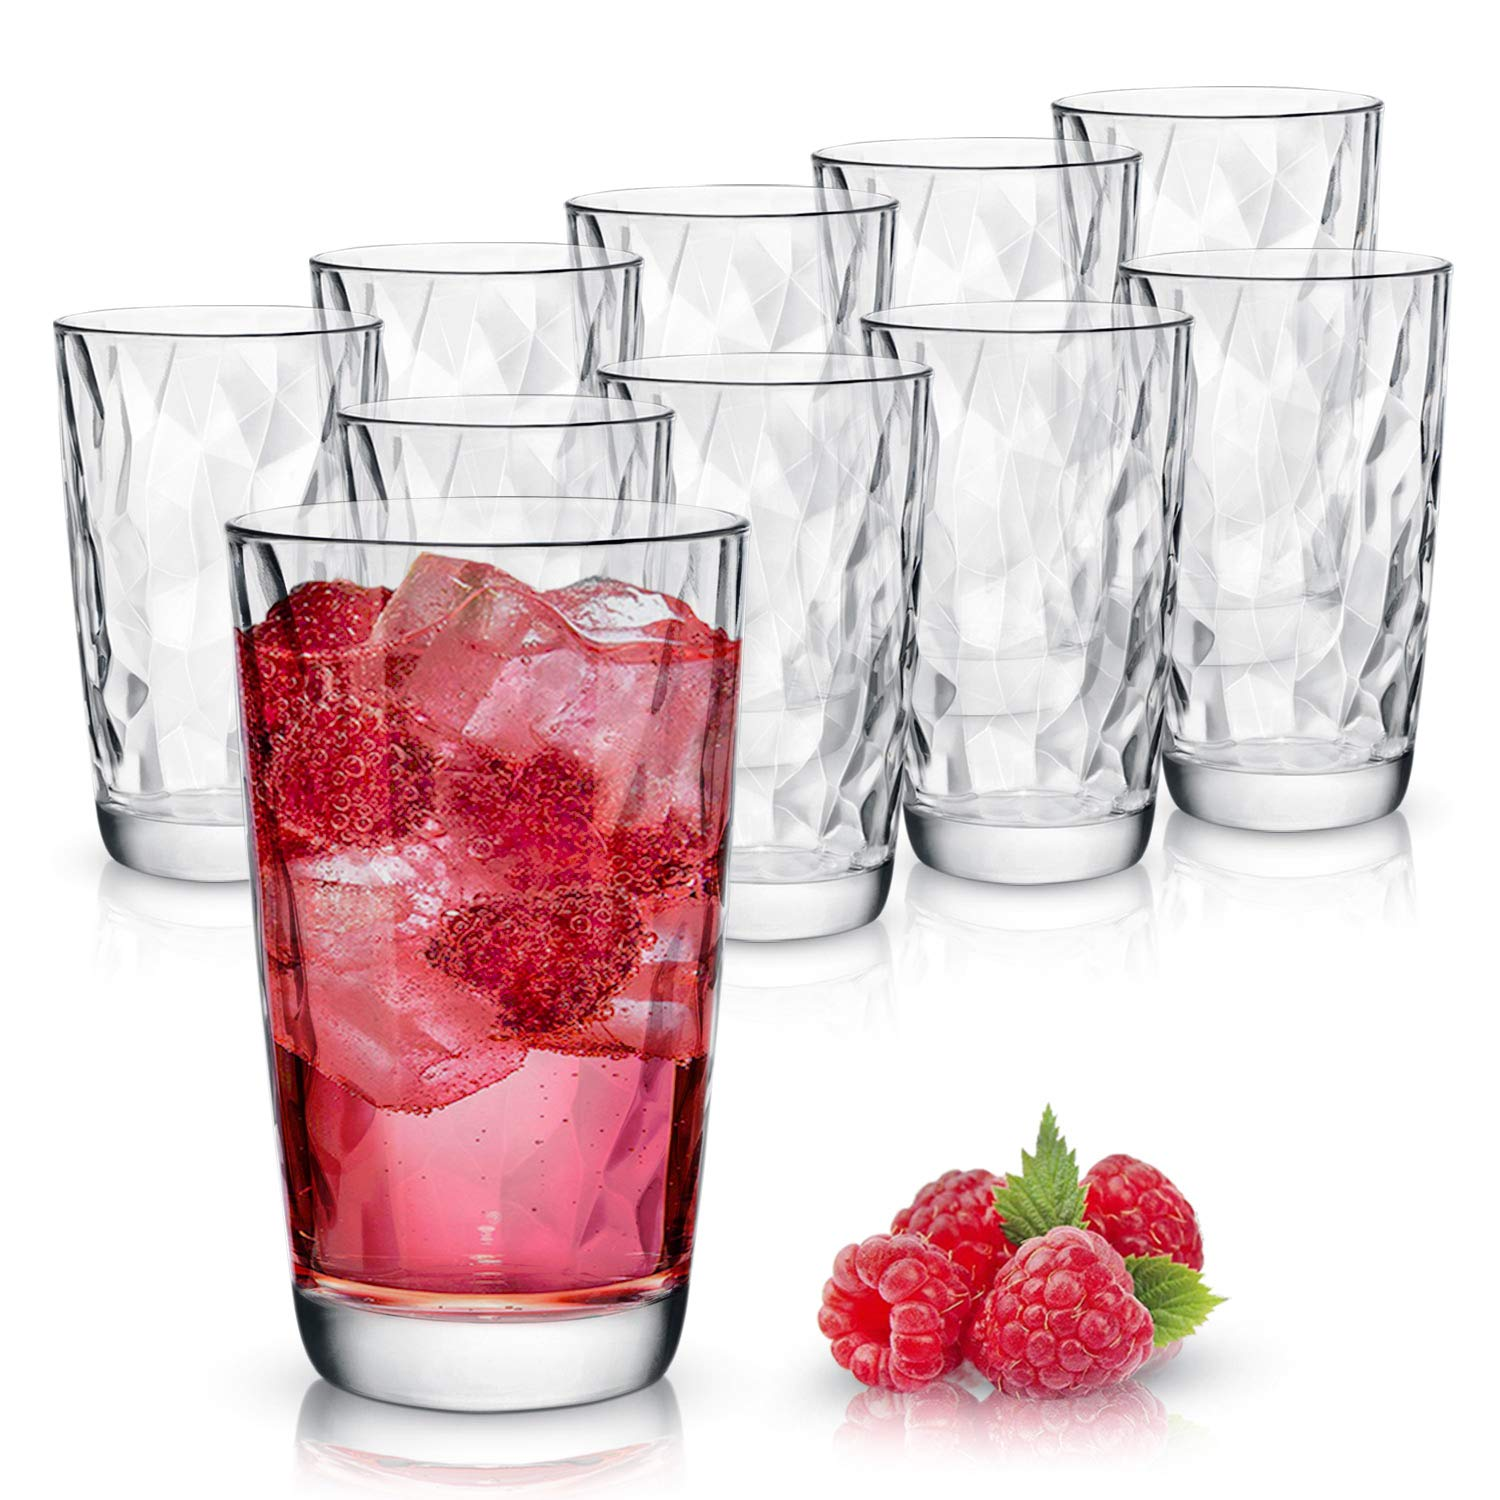 Clear Drinking Glasses Set of 10 | Real Glassware with Heavy Base | 10 Highball Drinkware Tumbler Set For Water, Whiskey, Cocktails | Best Kitchen Gift